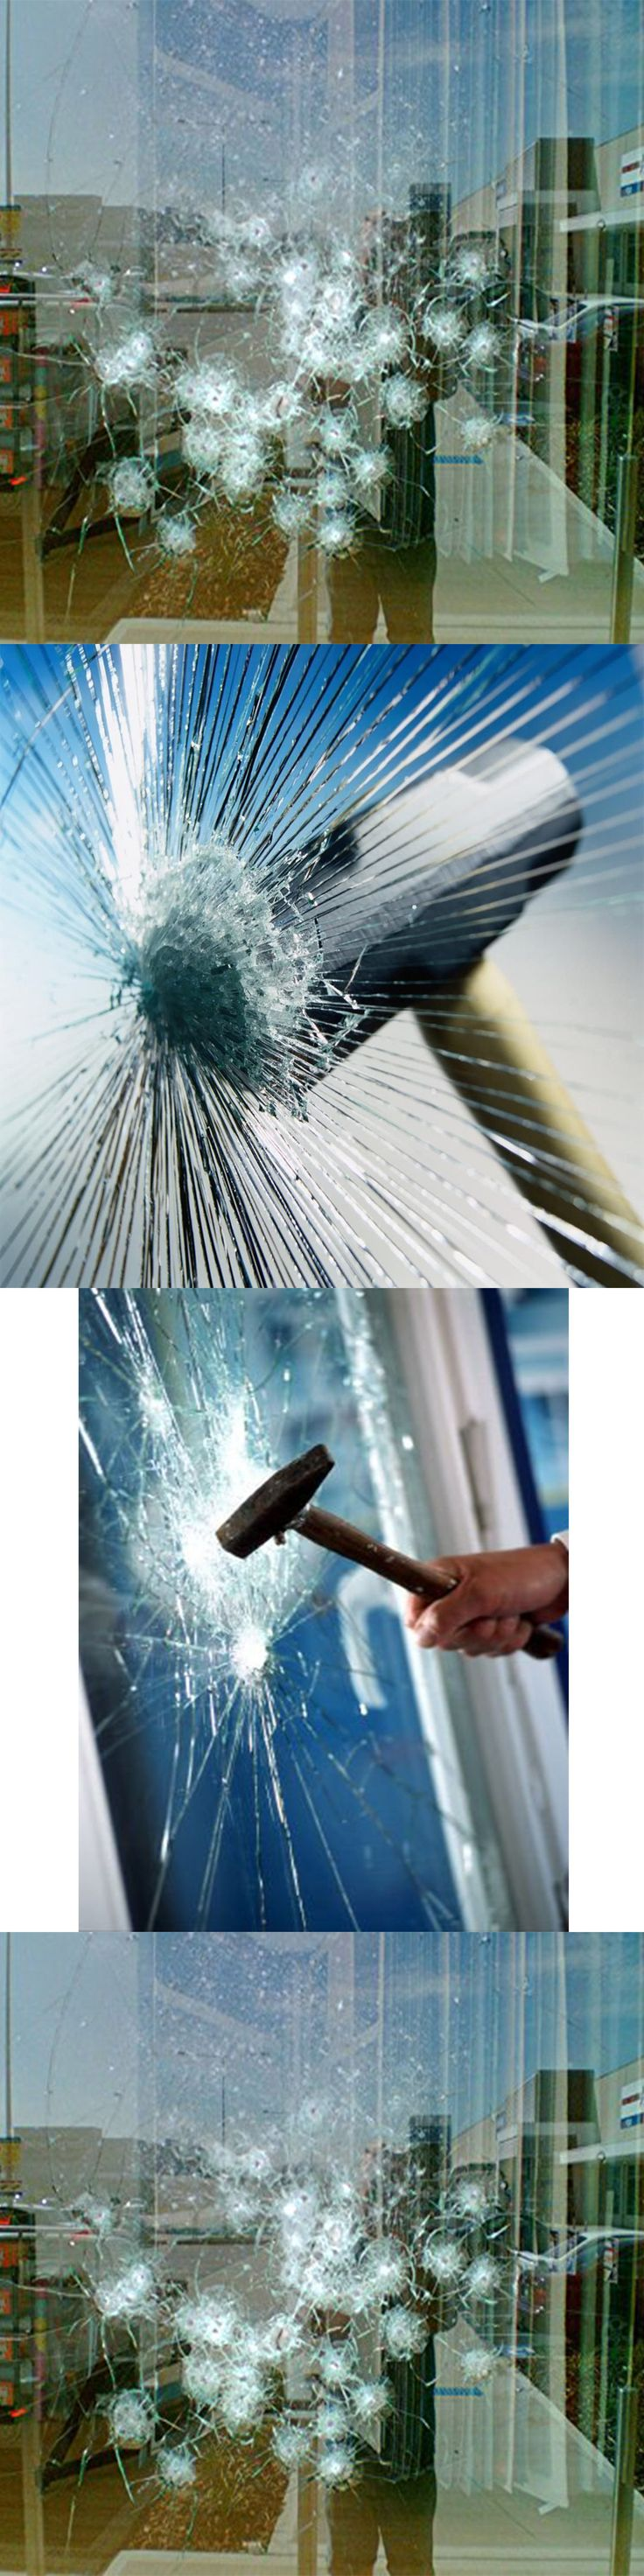 Window Film 175757: Impact Resistant Security Window Film Clear Safety 30 Wide X 12 Ft Roll Glass -> BUY IT NOW ONLY: $49.99 on eBay!